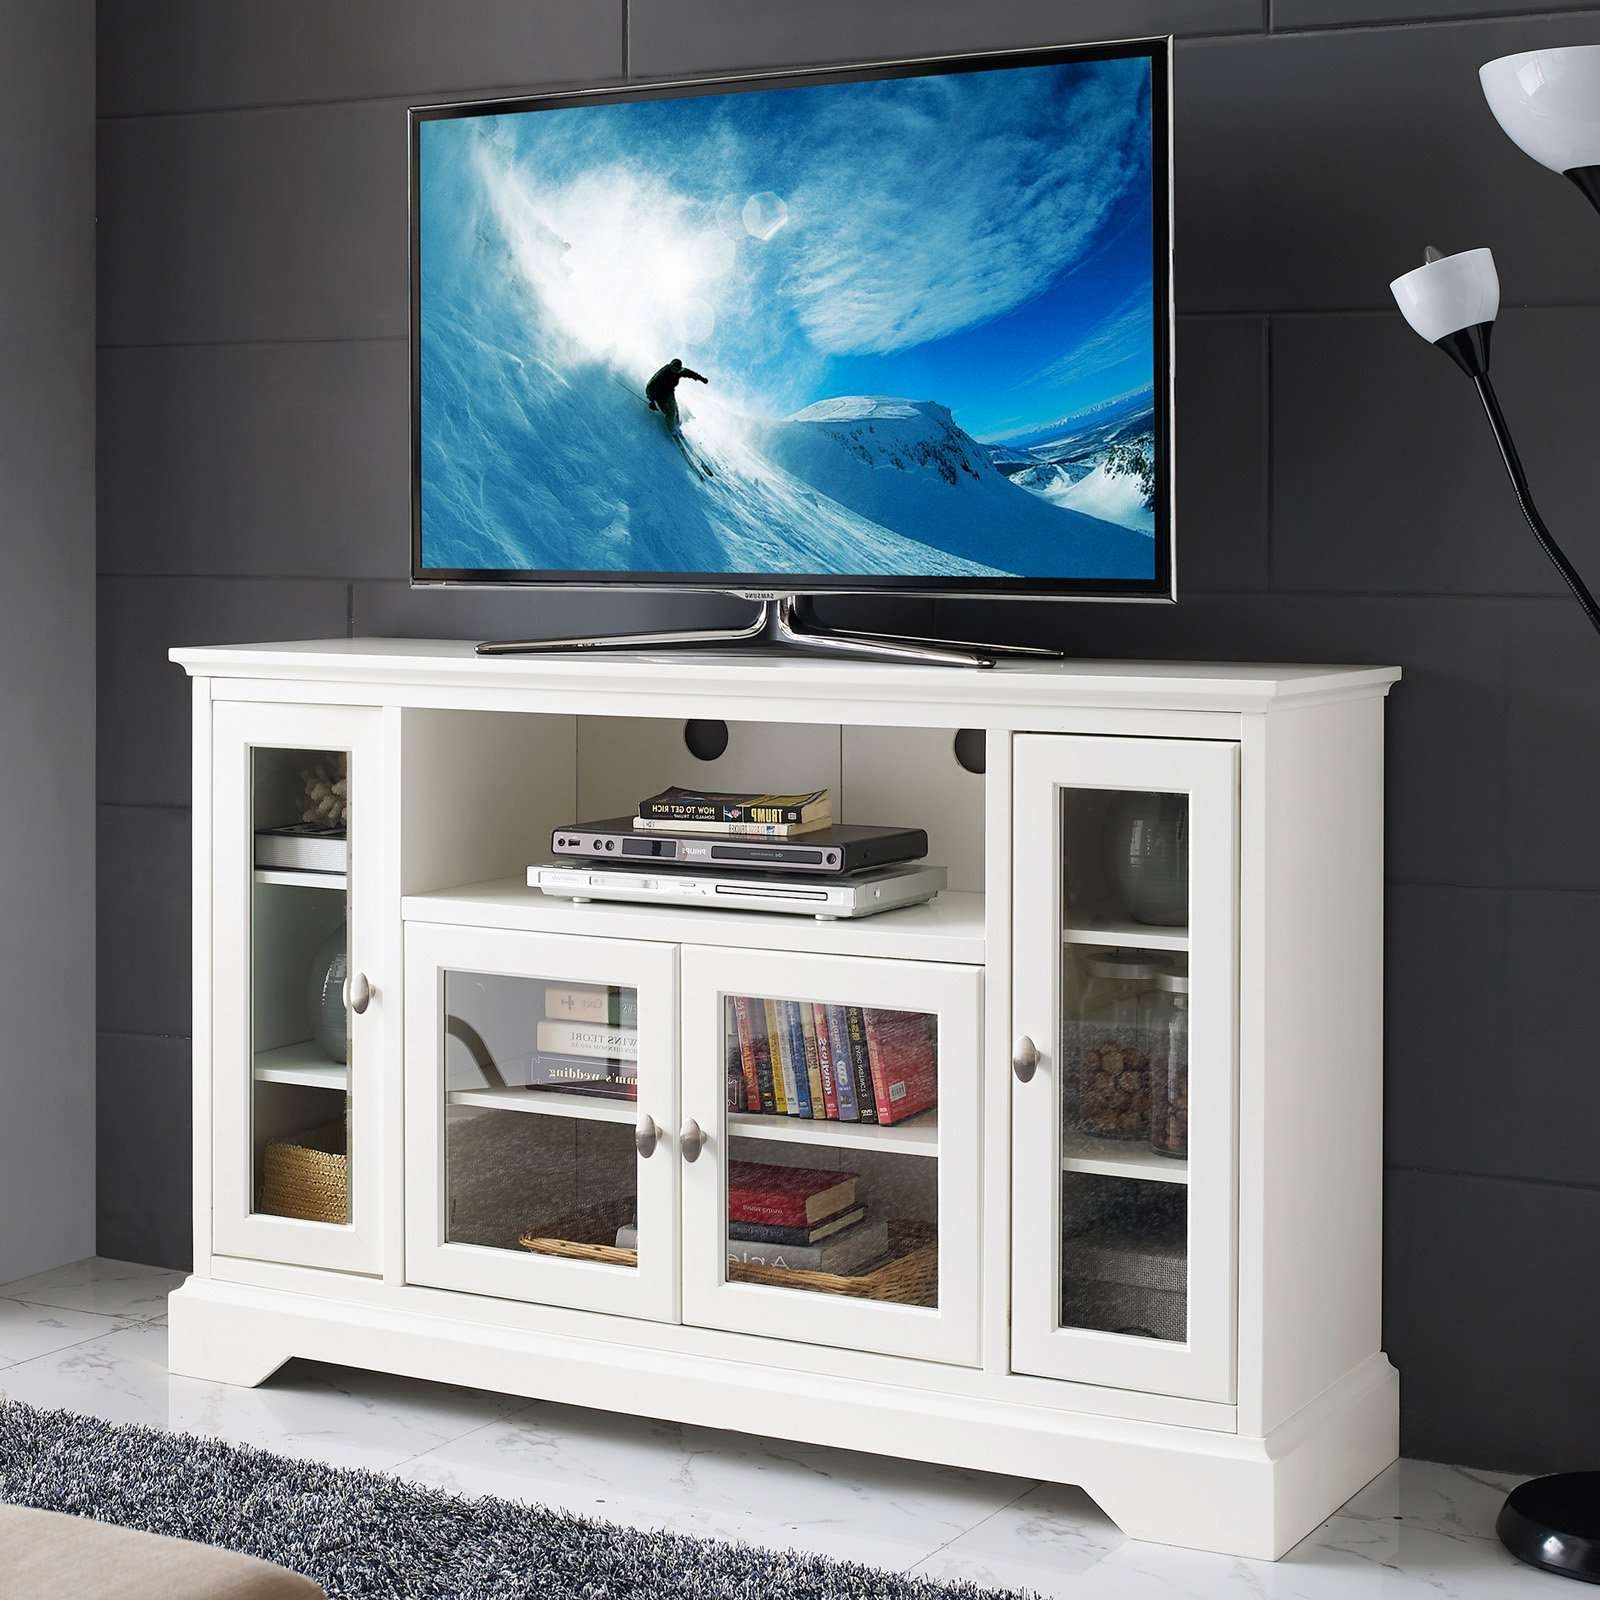 Belham Living Hampton Tv Stand – White | Hayneedle With Tv Stands White (View 5 of 20)